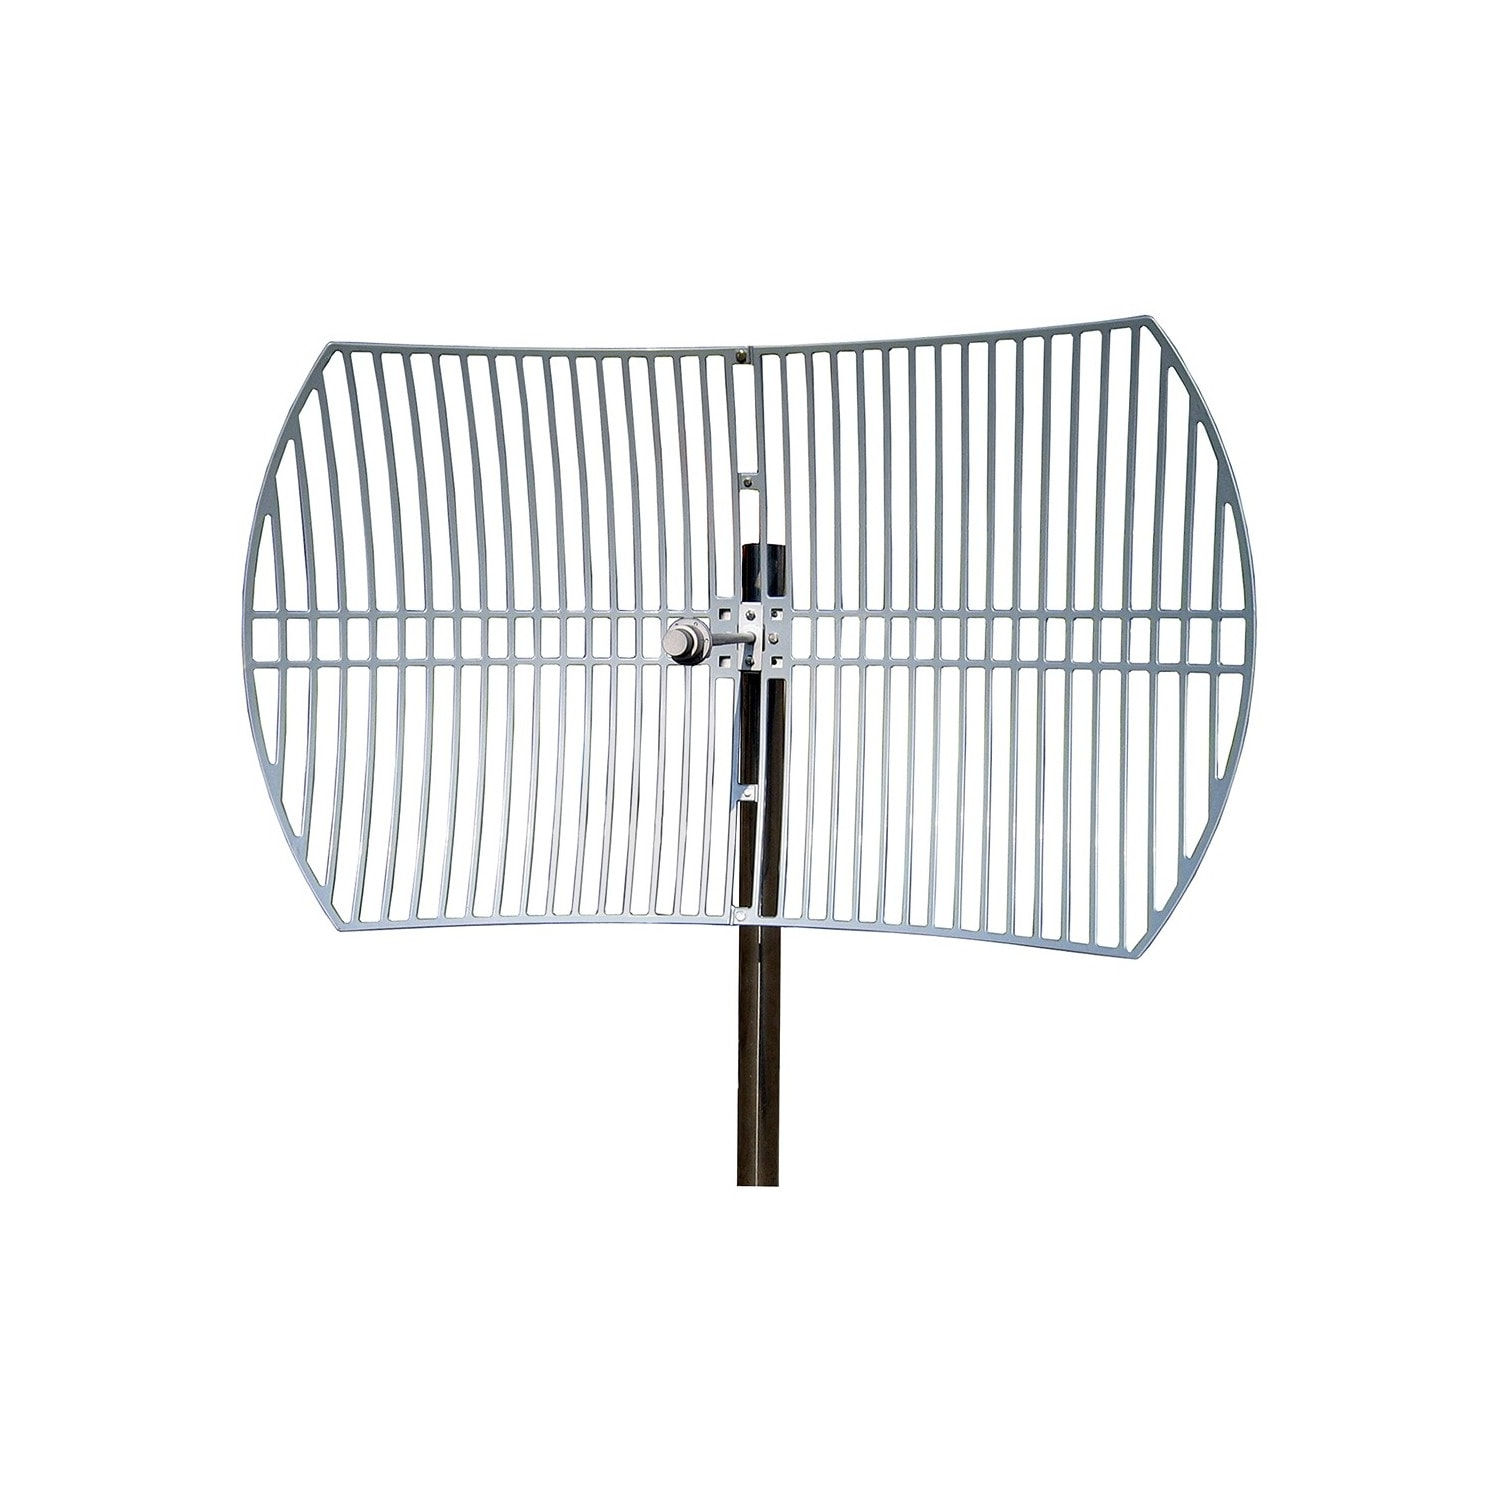 Buy Tp Link Tl Ant5830b Antenna For Outdoor Wireless Data Network Tplink